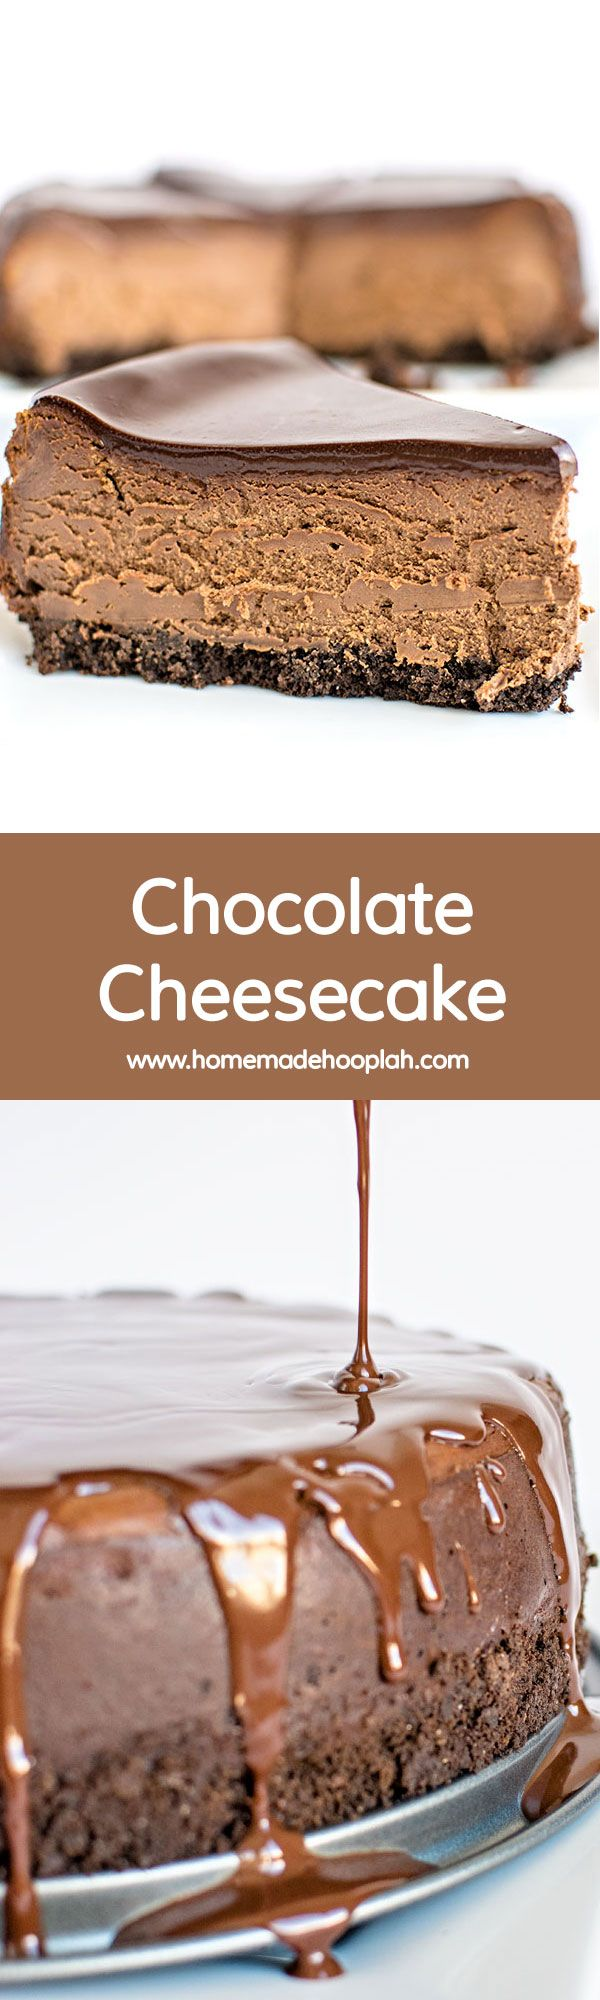 Chocolate Cheesecake! The traditional chocolate cheesecake, complete with…